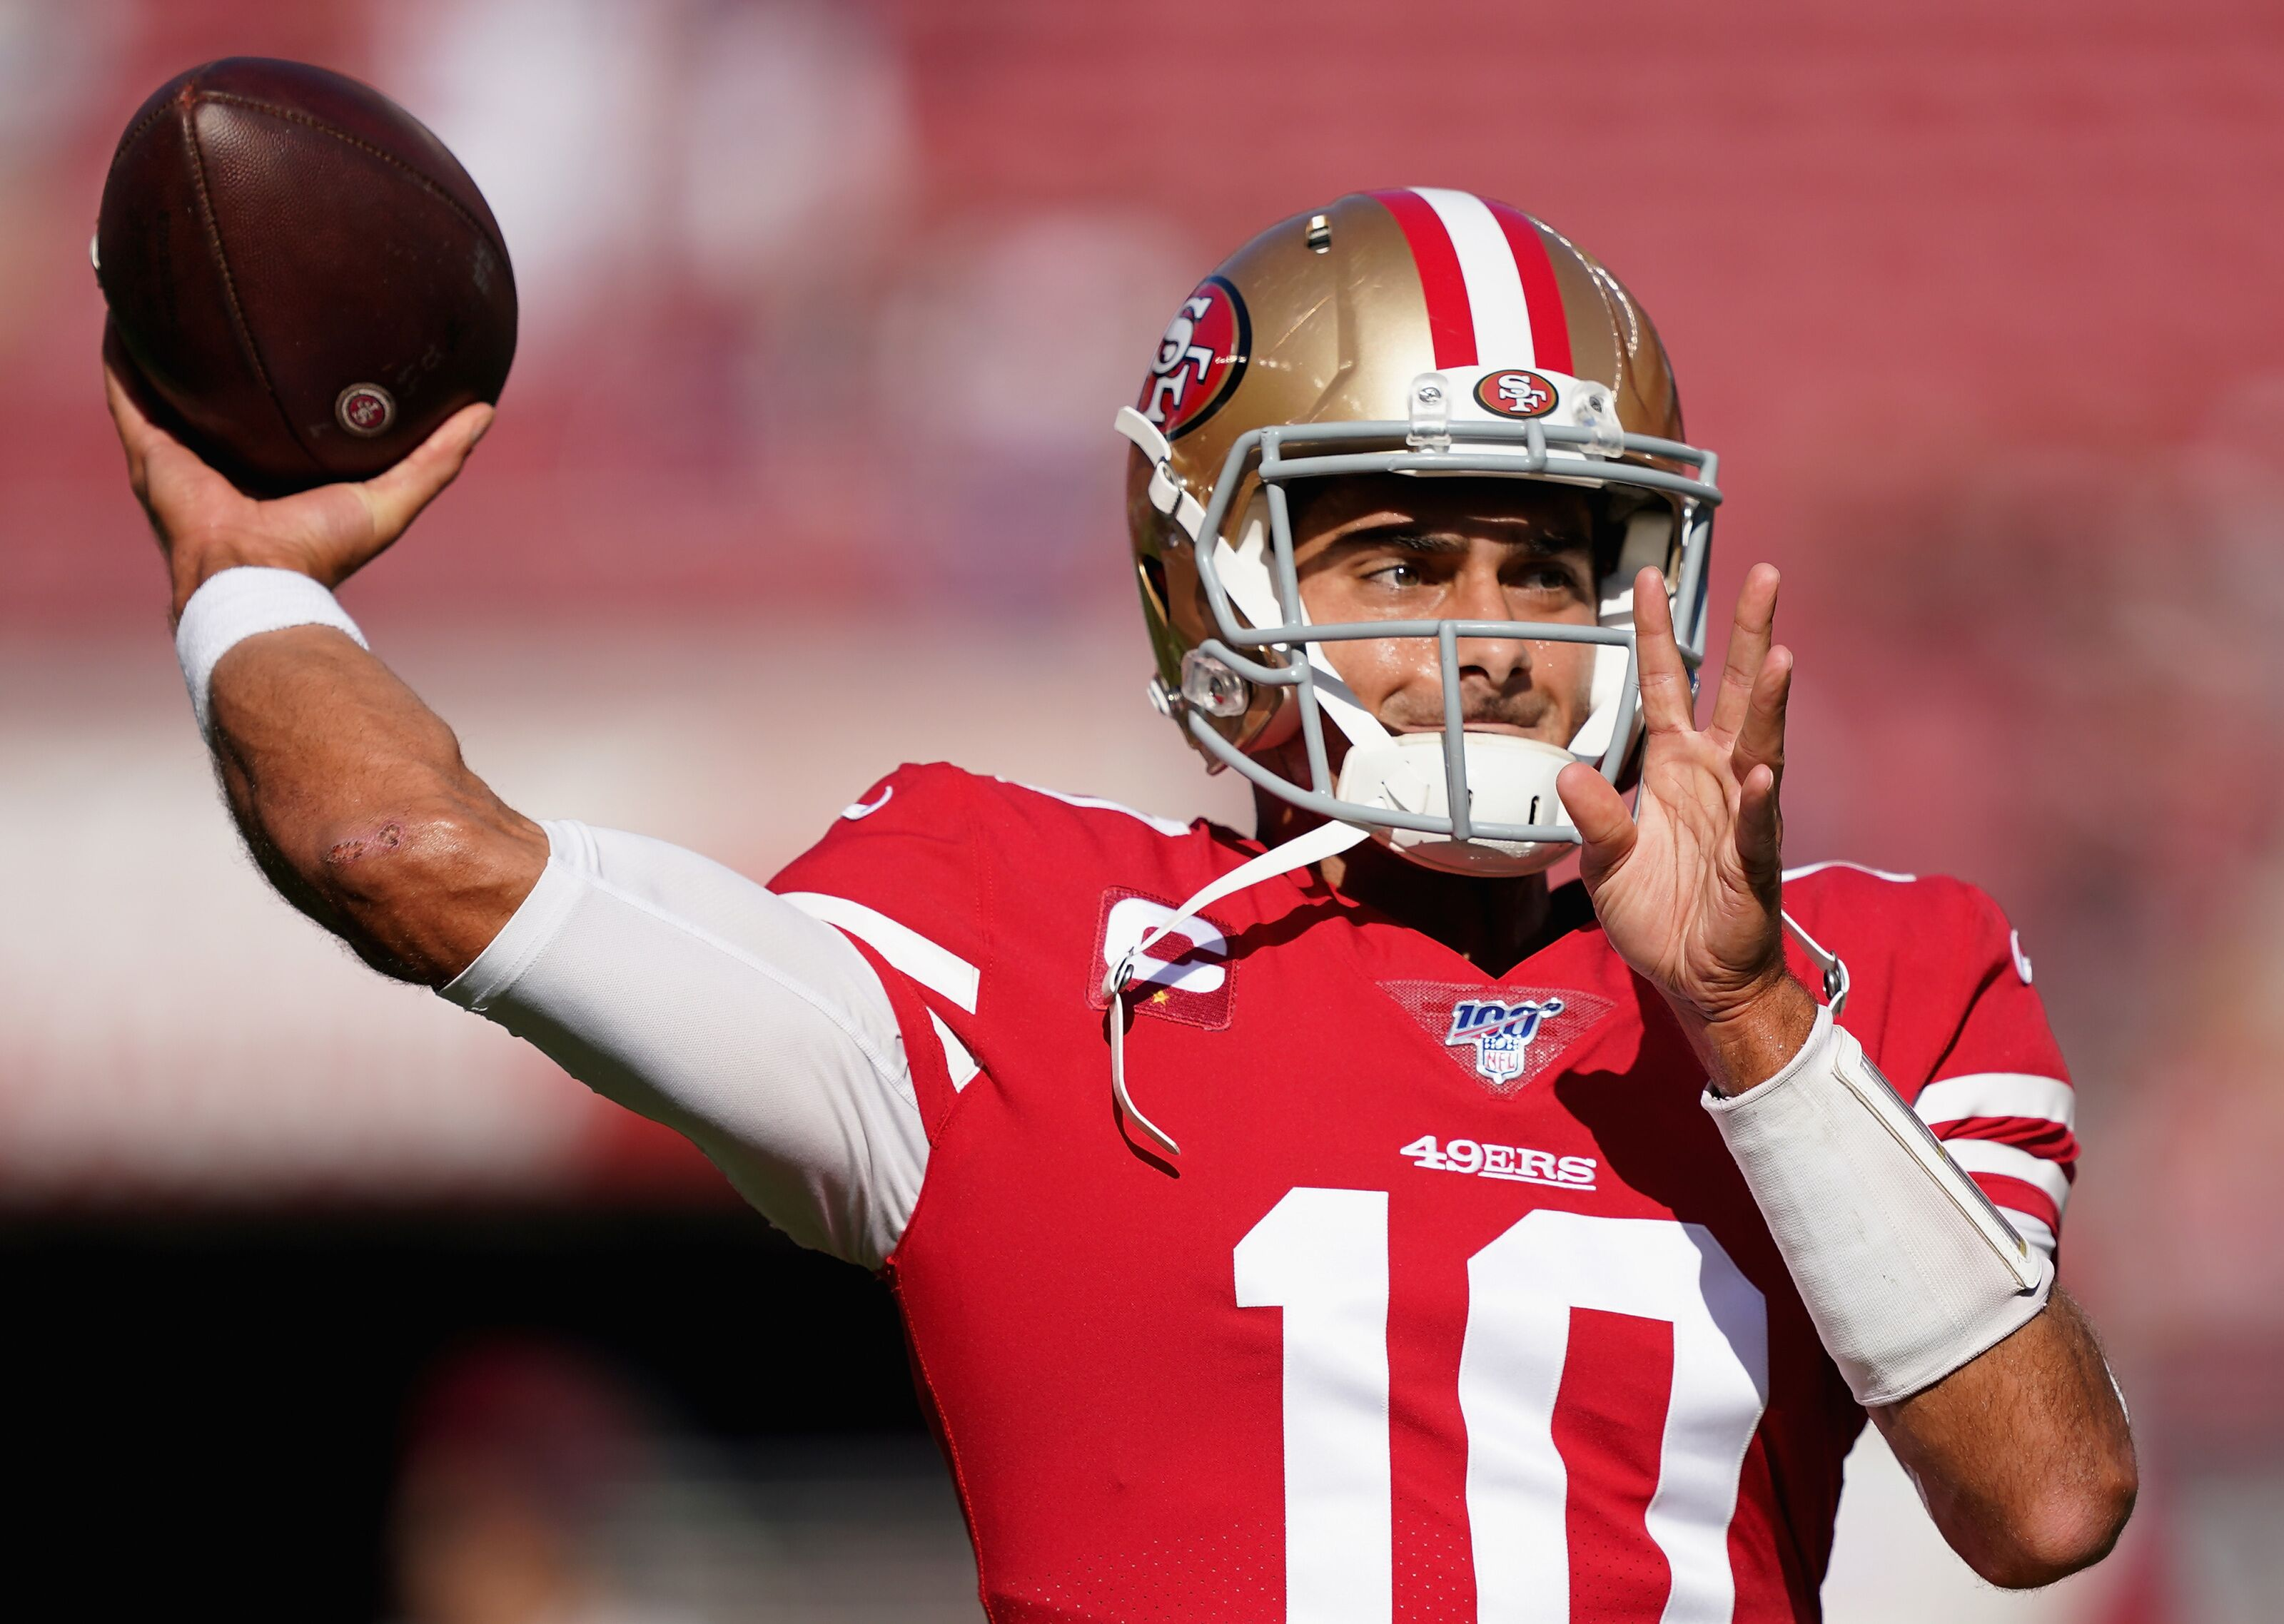 49ers needed to beat Cardinals because remaining schedule is brutal